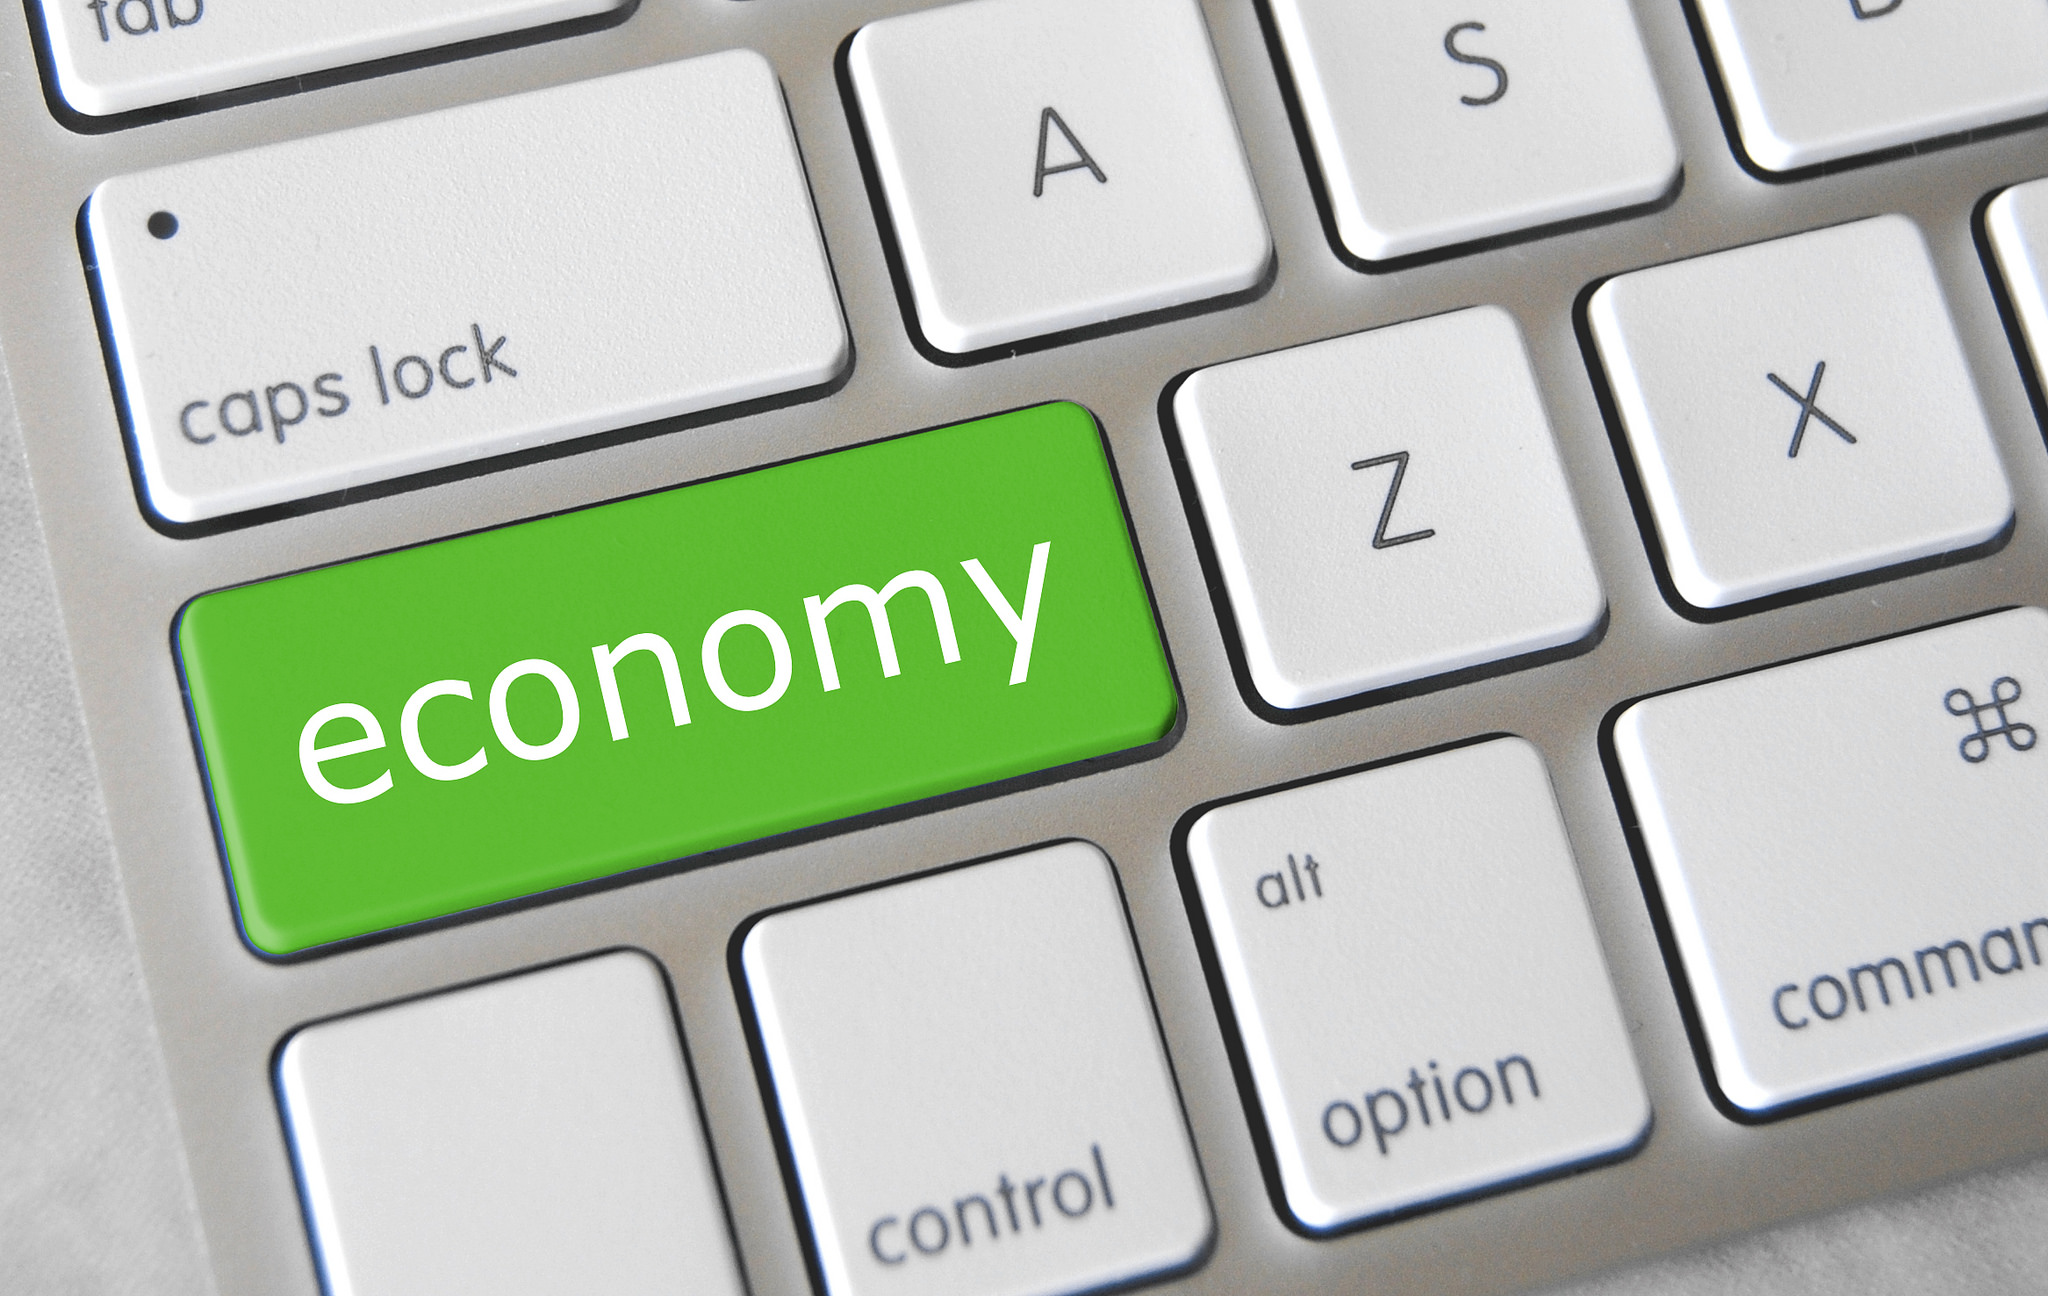 Economy_Photo courtesy of GotCredit, Creative Commons